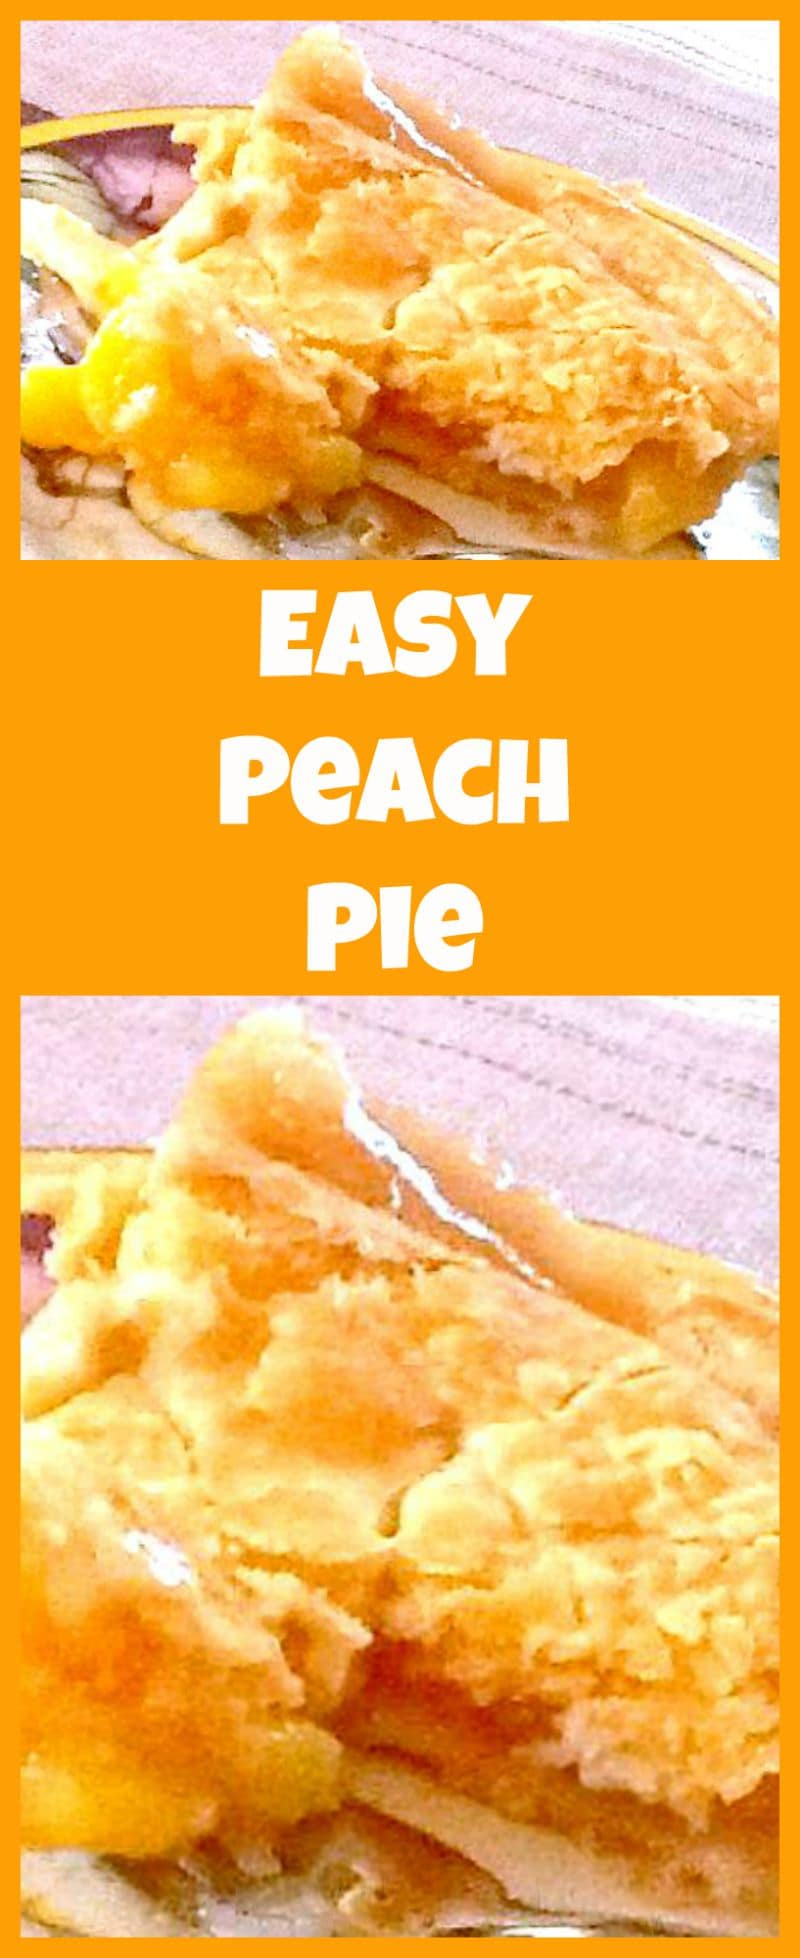 Homemade Peach Pie. A wonderful recipe all made from scratch with a delicious crispy flaky pastry.